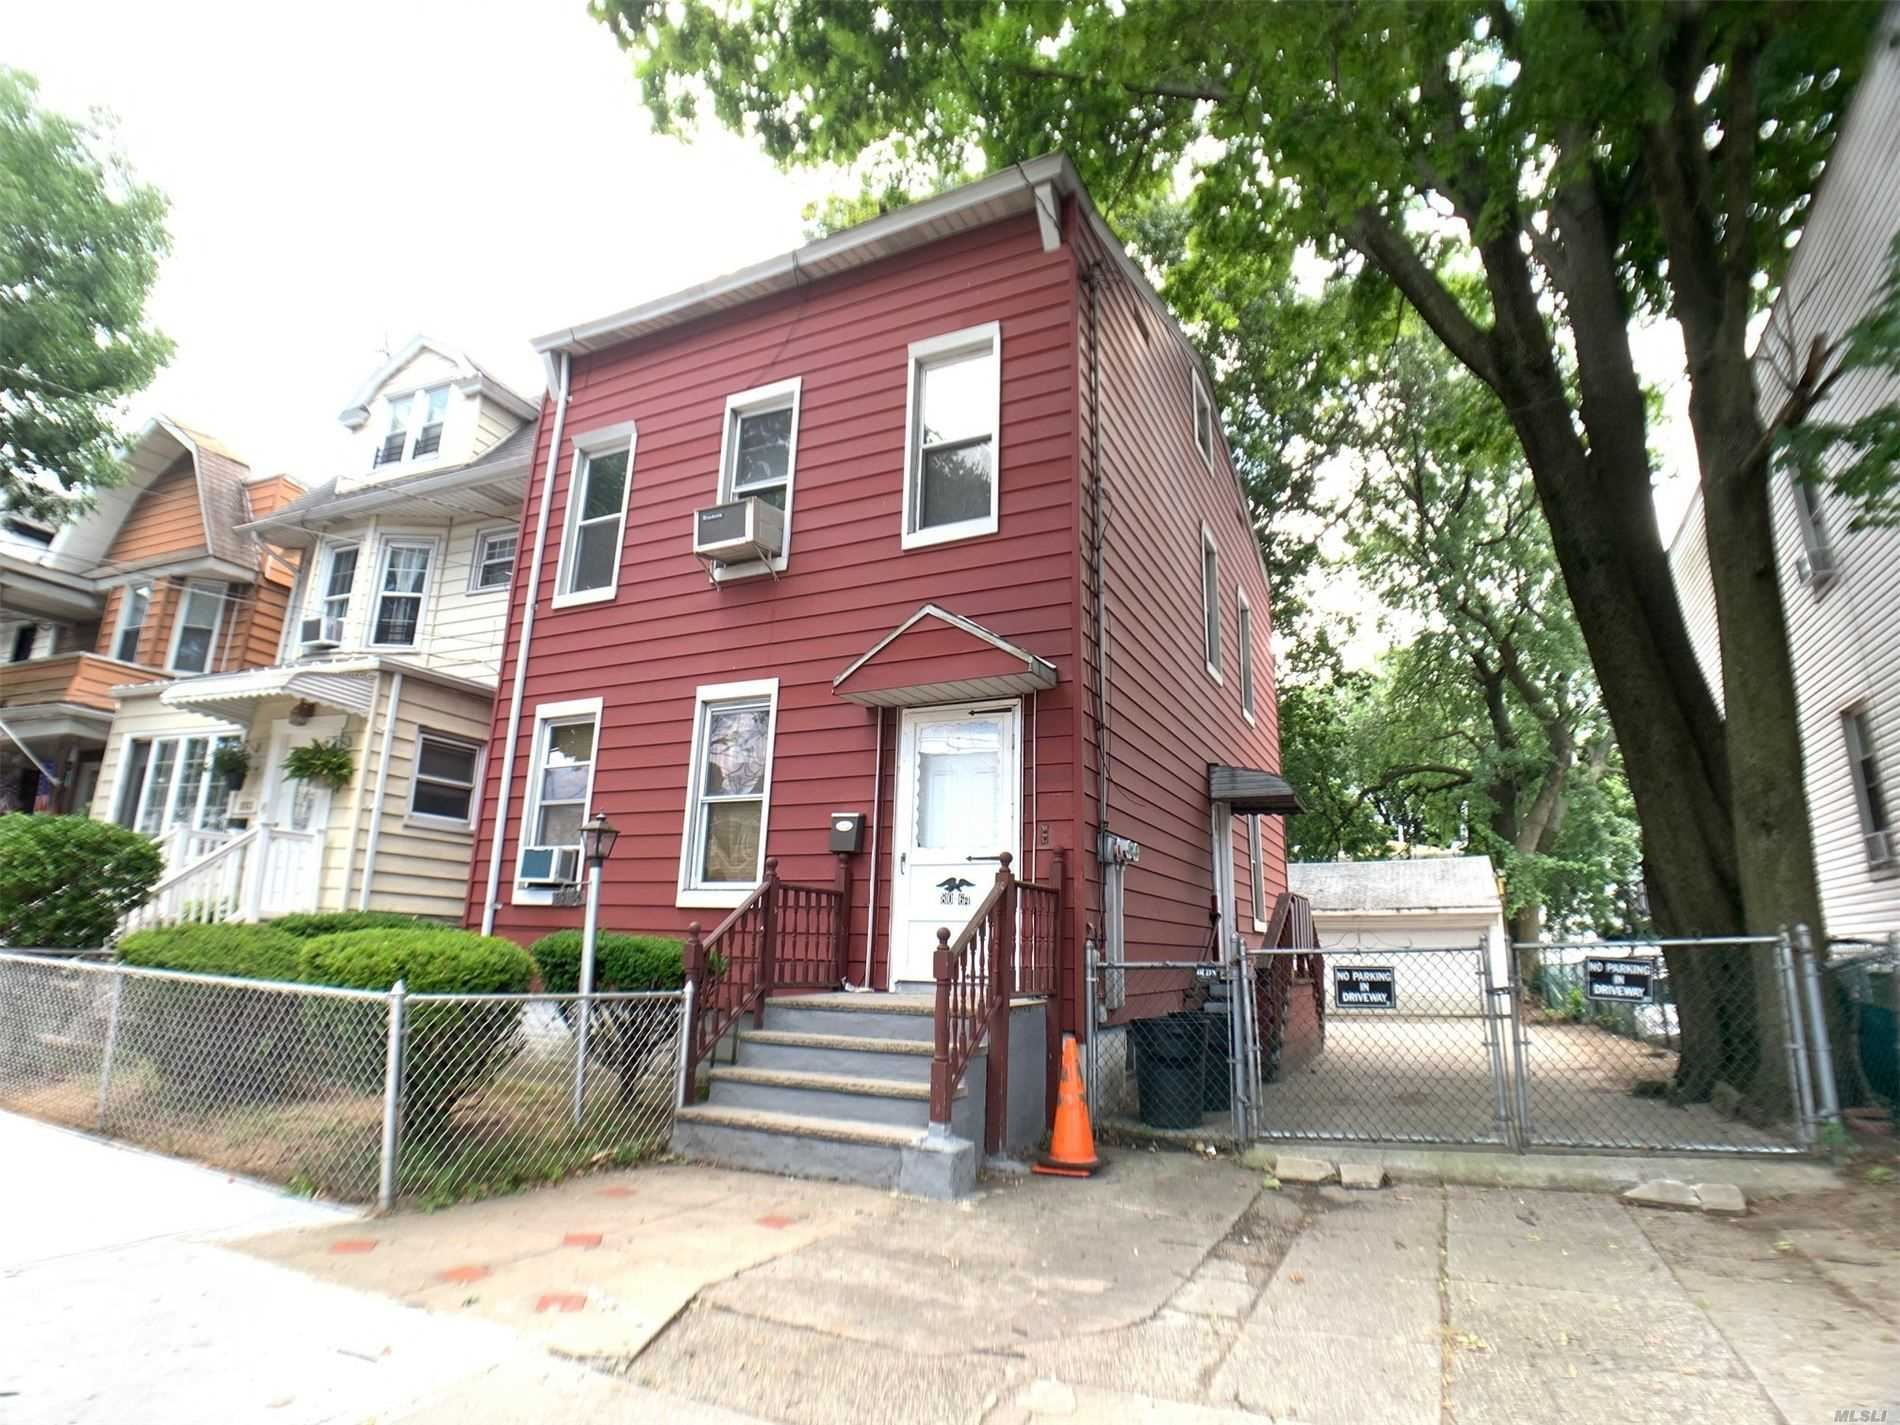 80-64 88th Road, Woodhaven, NY 11421 - MLS#: 3233181